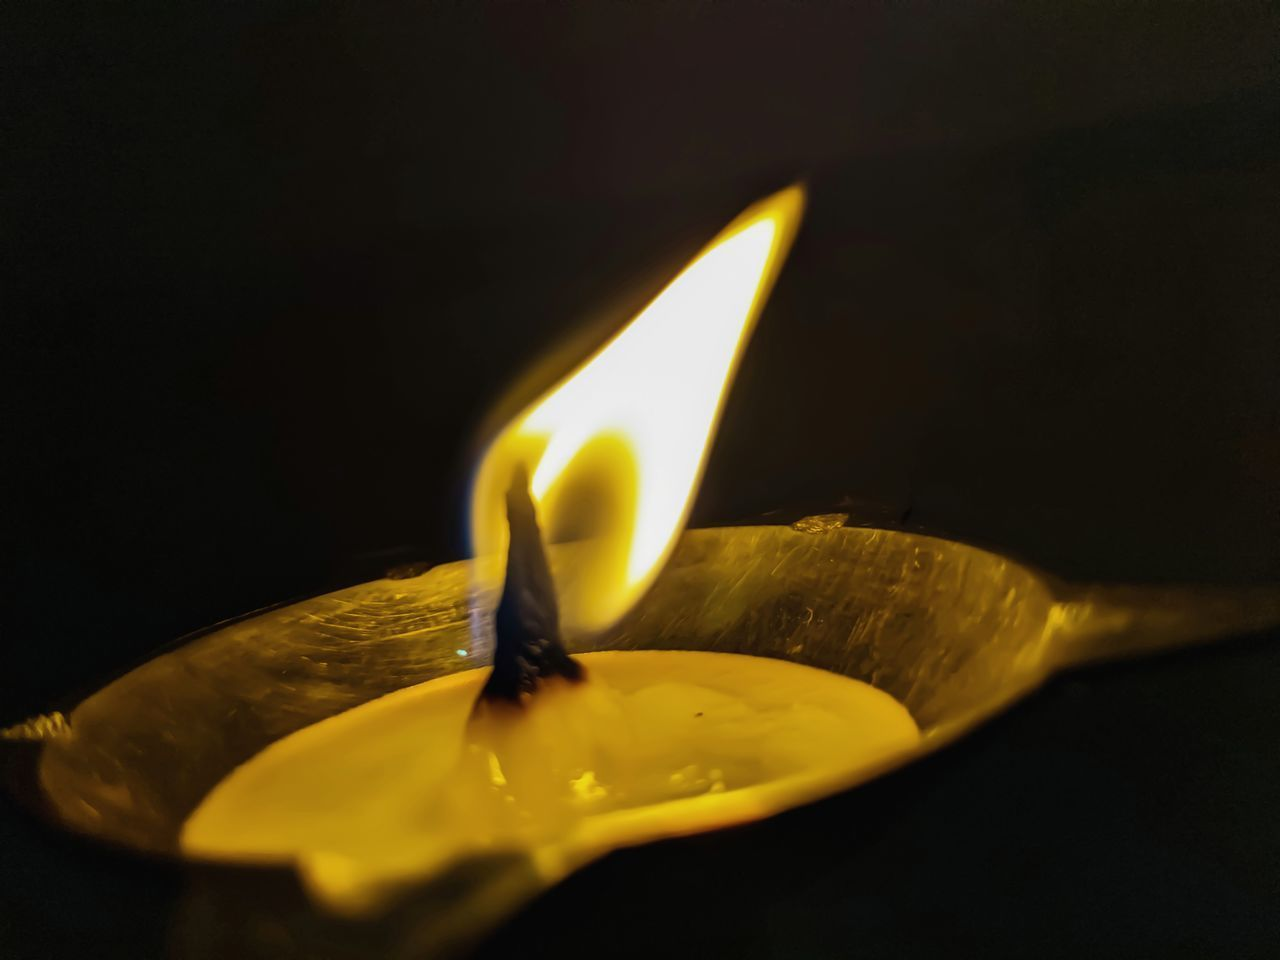 CLOSE-UP OF LIT CANDLES IN DARK